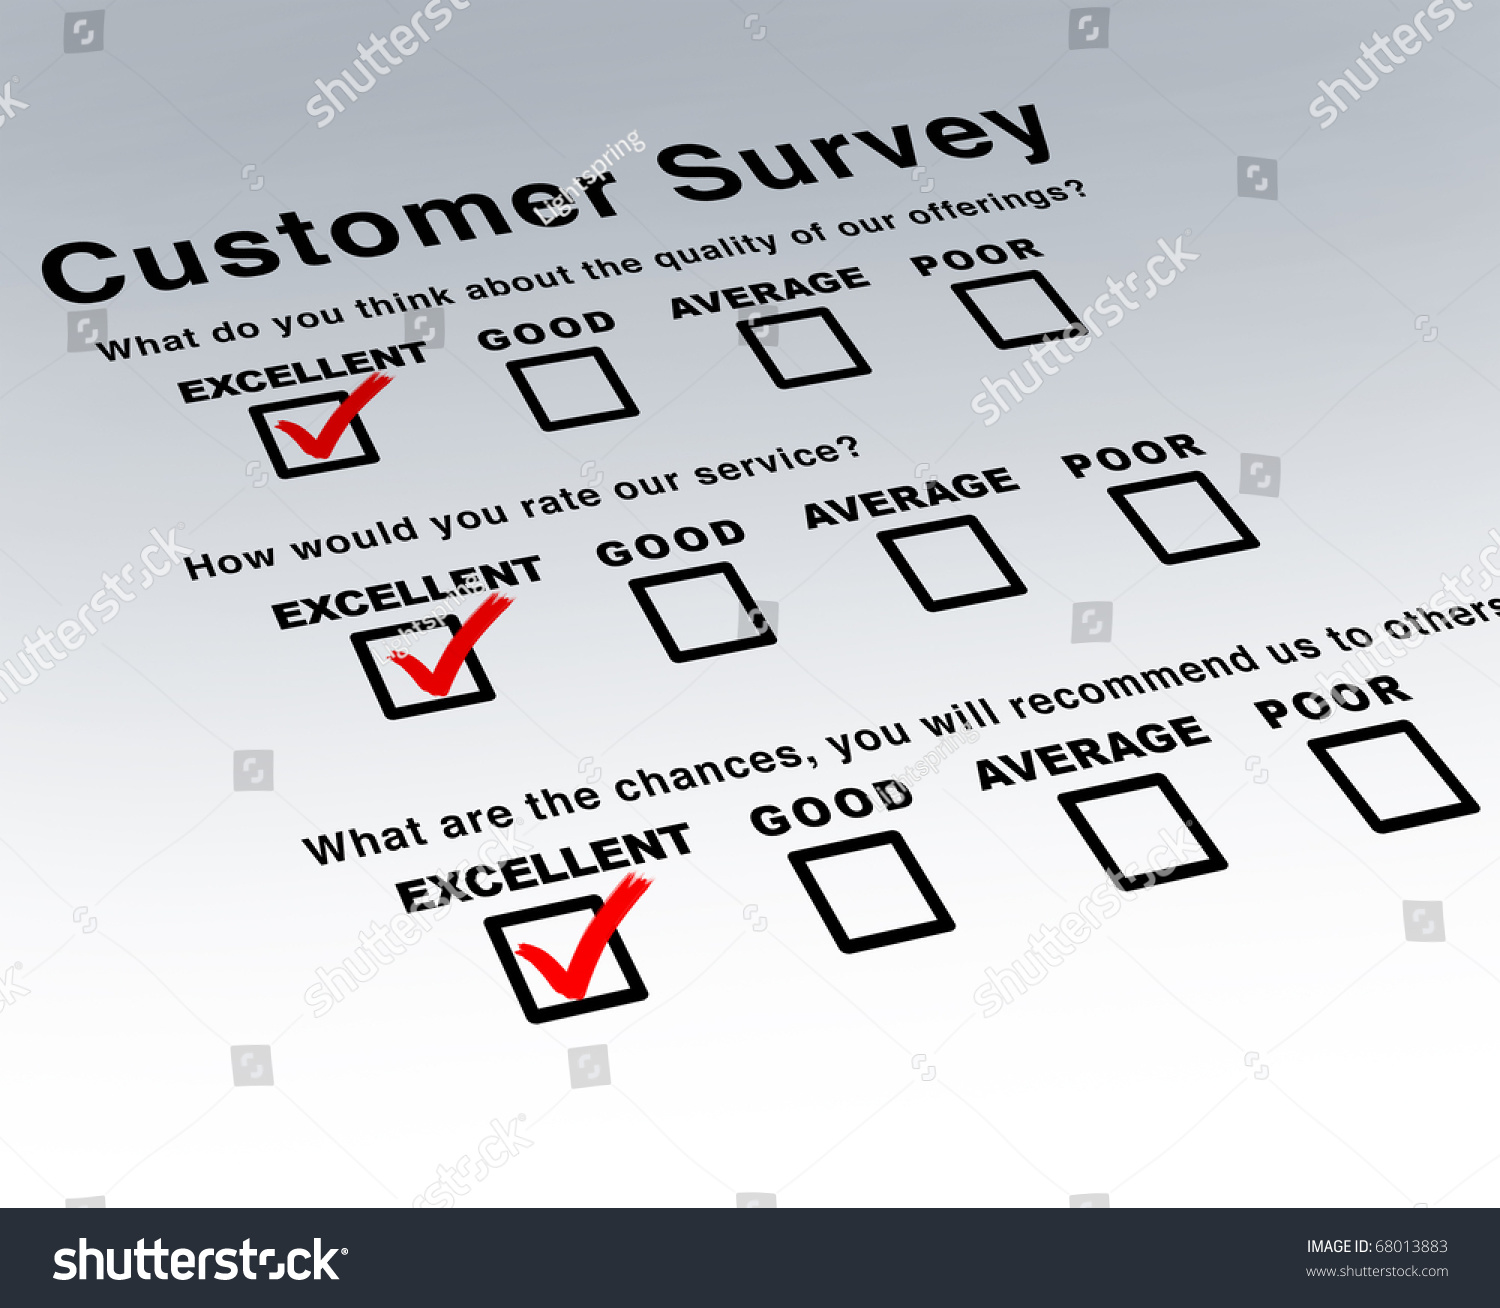 excellent customer survey very good service stock illustration 68013883 shutterstock